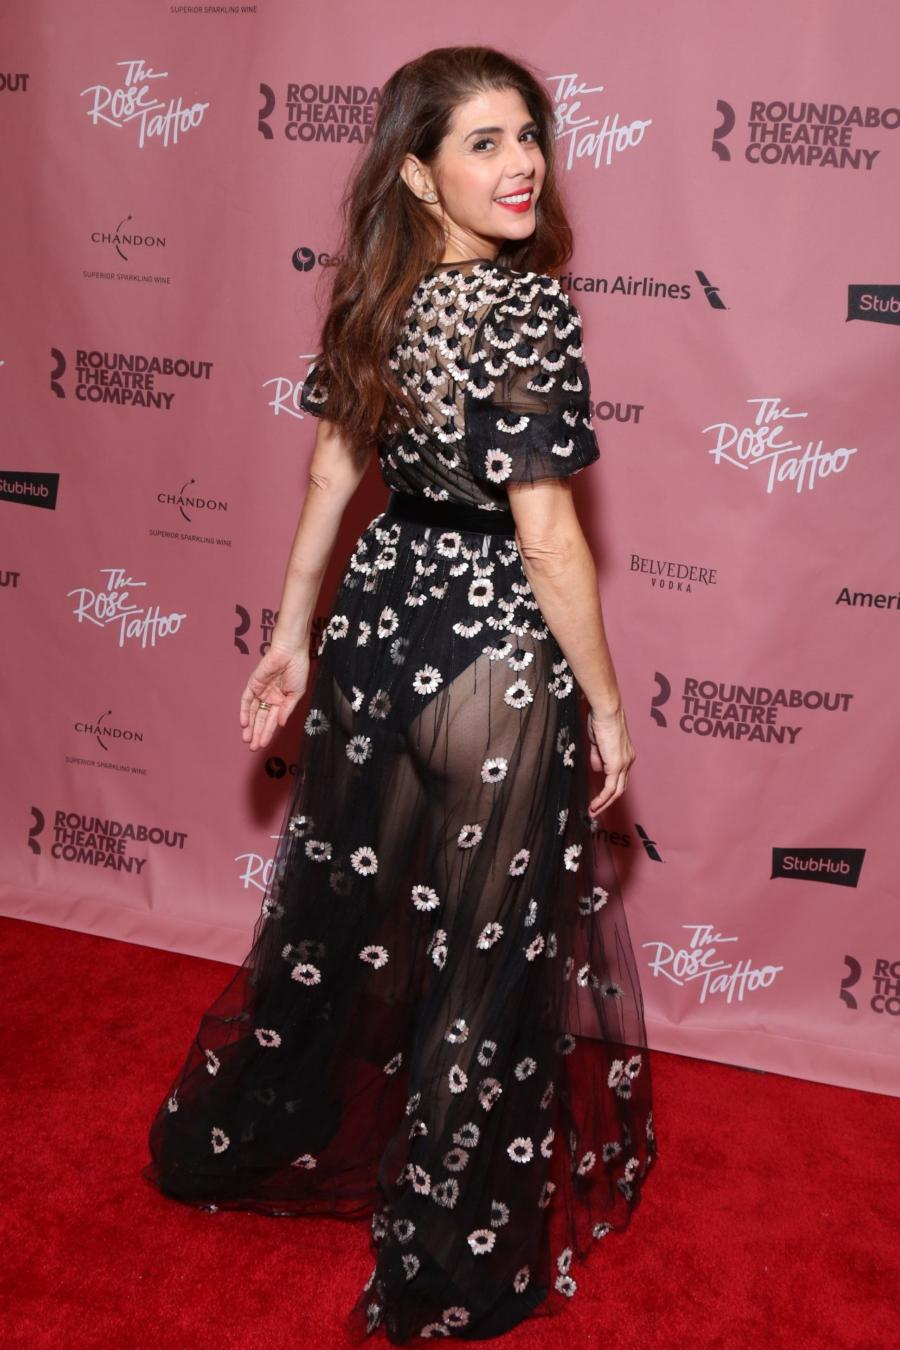 Marisa Tomei Opening Party for The Rose Tattoo in New York